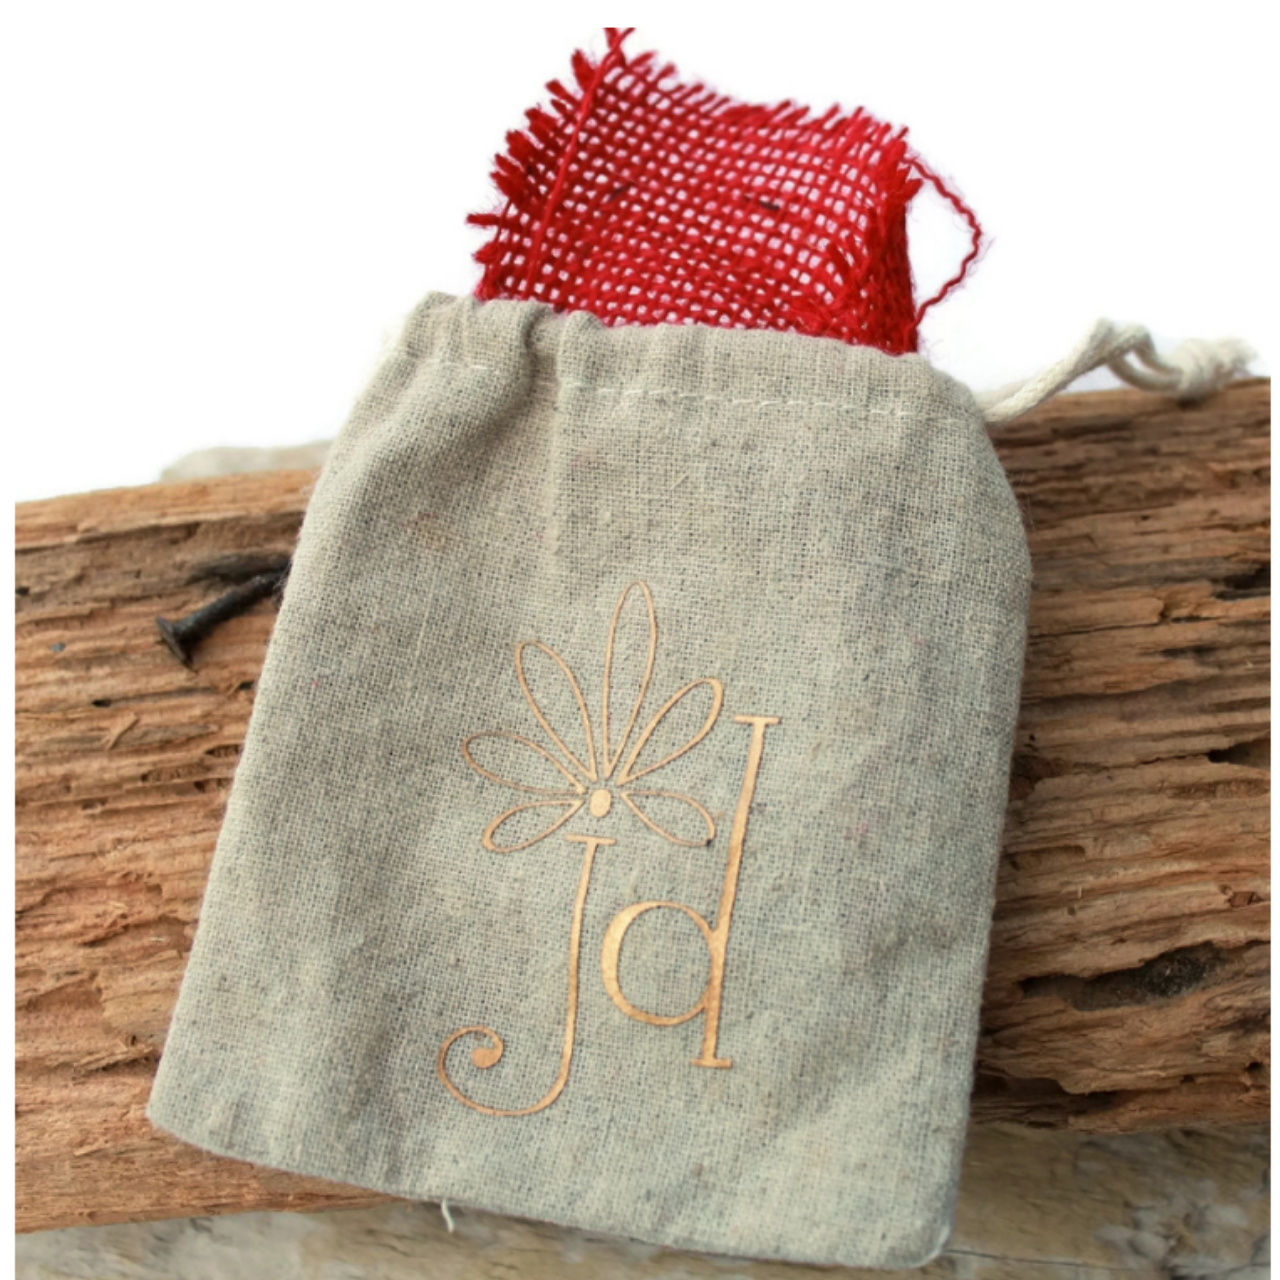 tan-linen-jd-jewelry-bag-red-burlap-wood-background